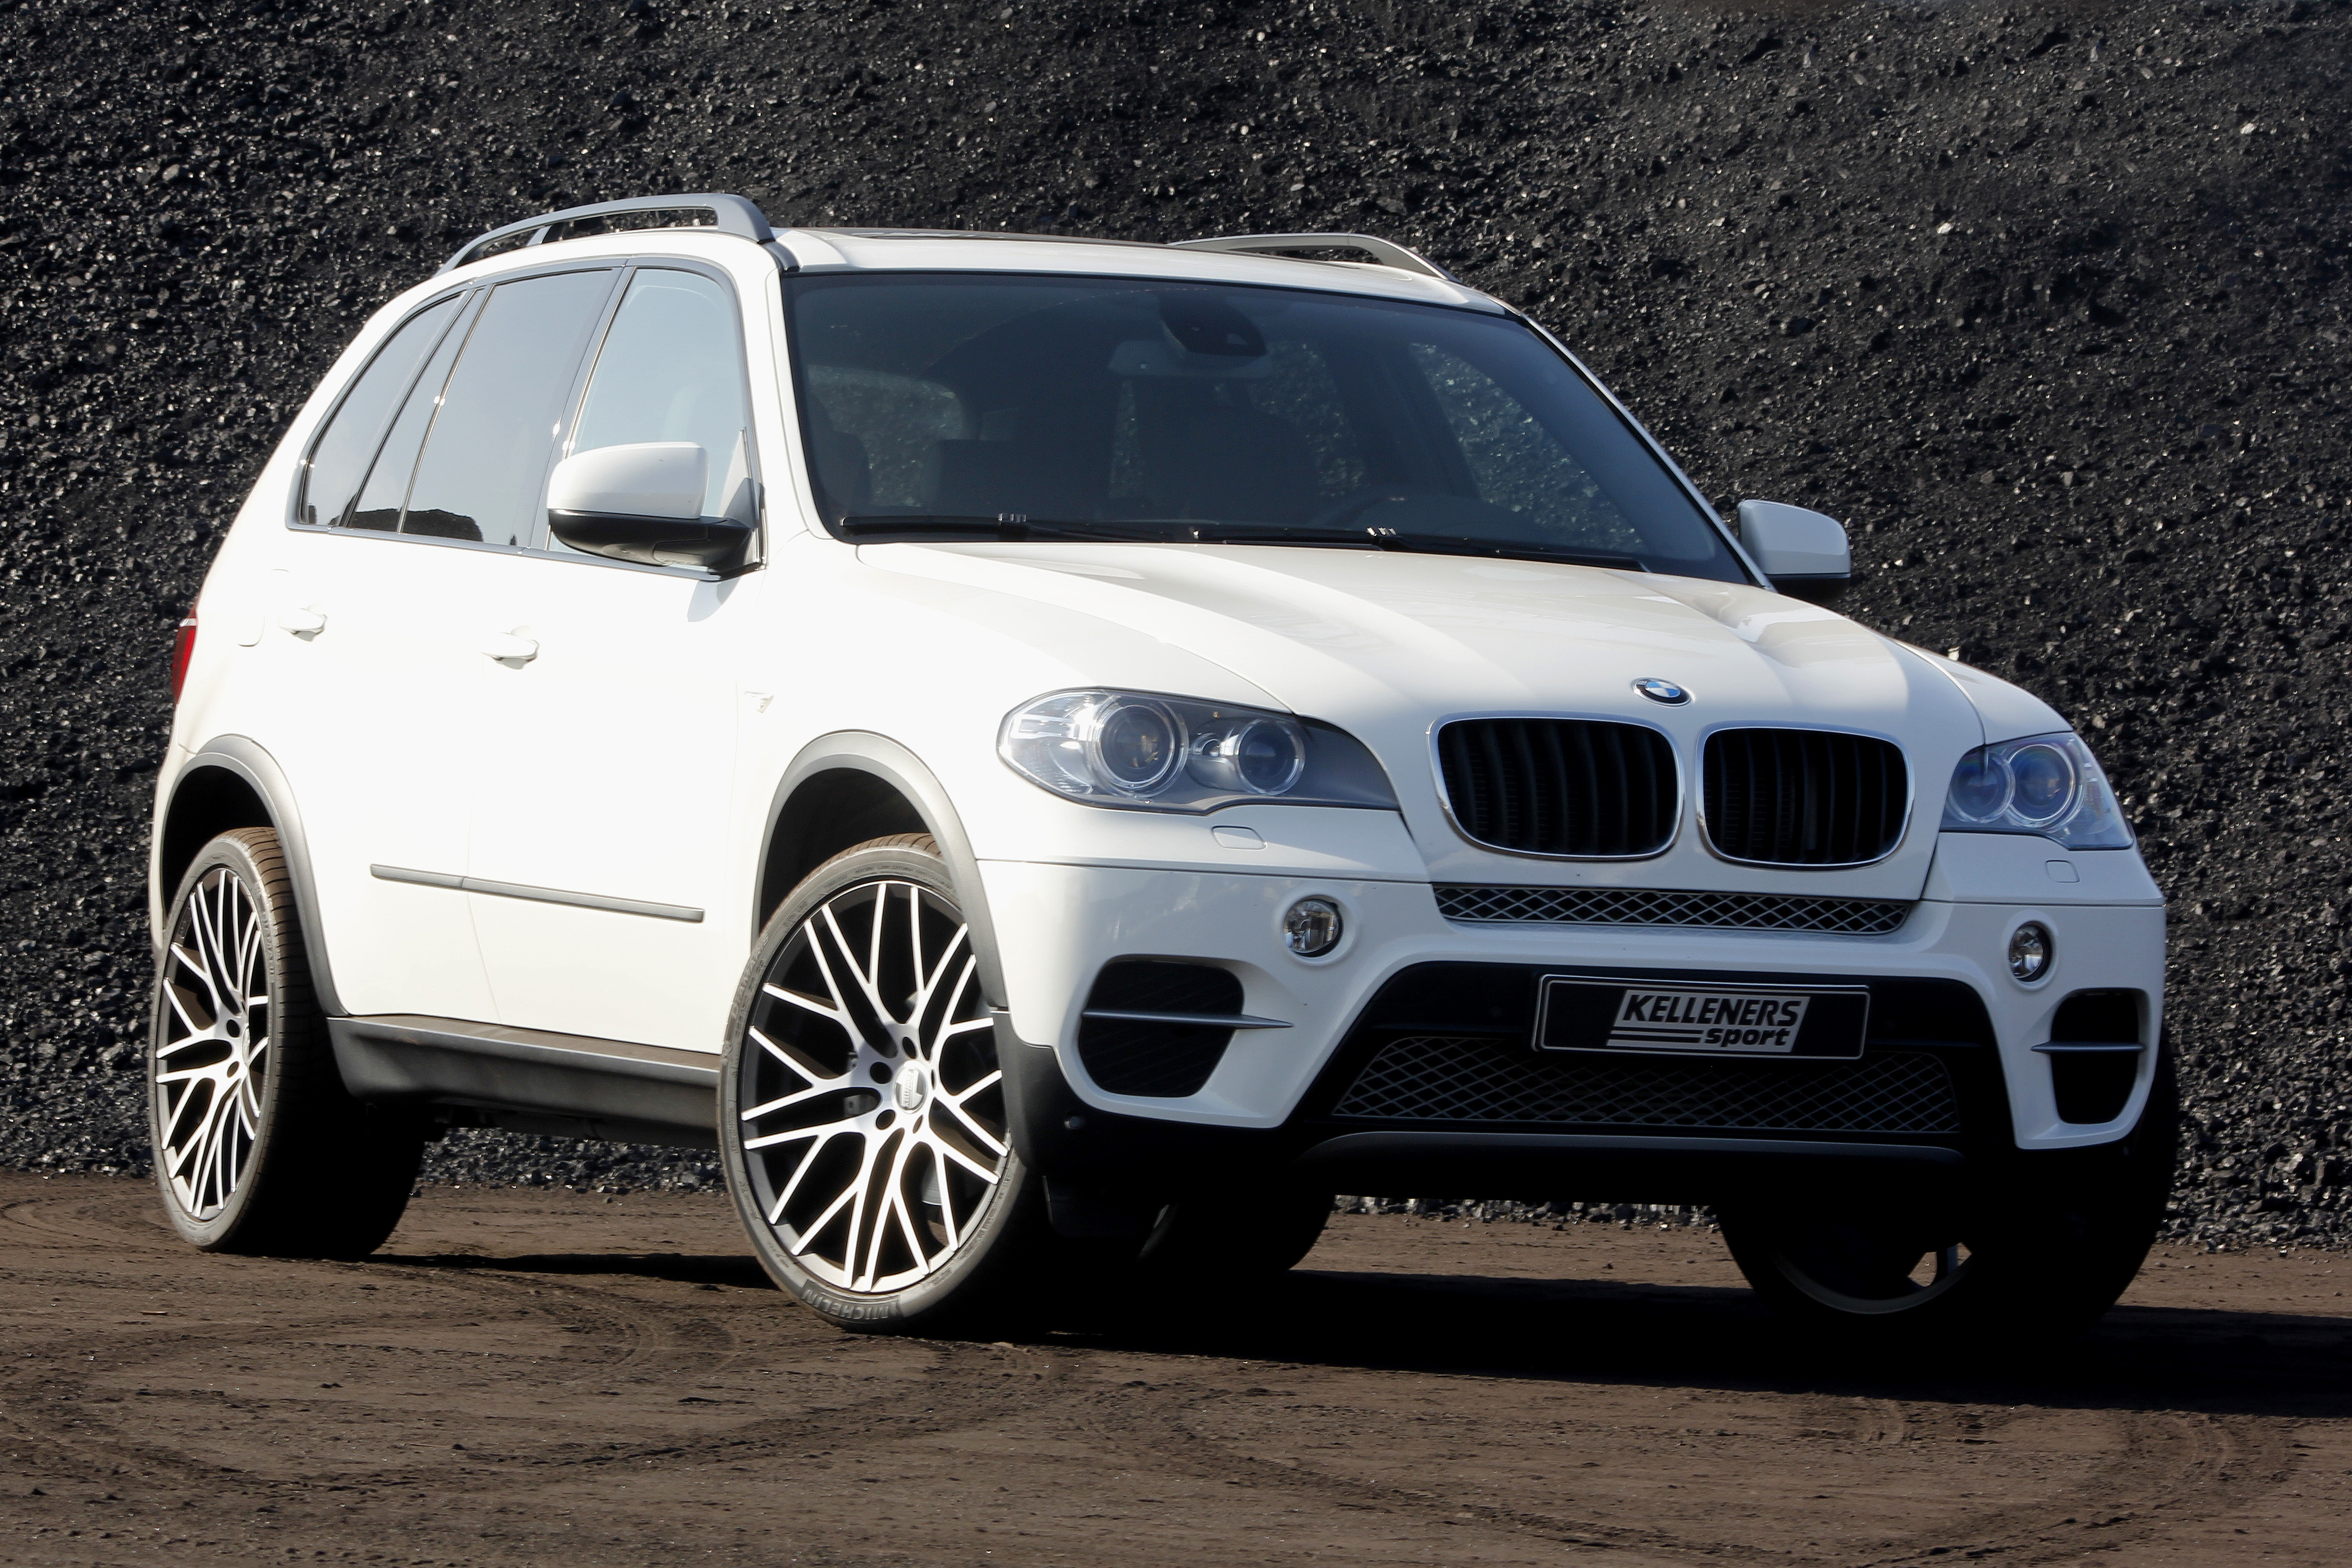 bmw x5 2012 review amazing pictures and images look at. Black Bedroom Furniture Sets. Home Design Ideas